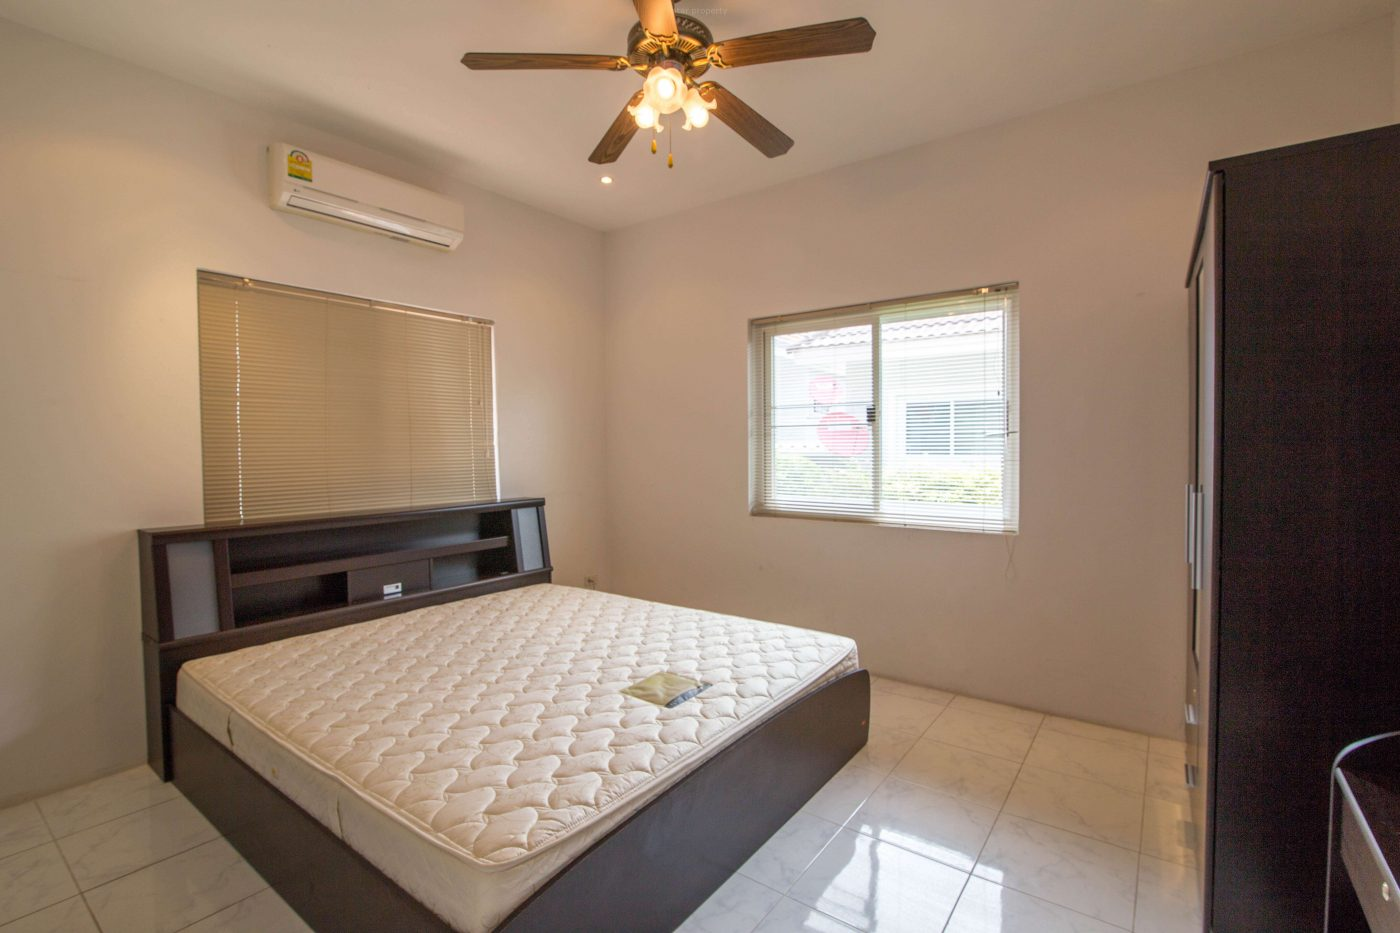 detached house for rent hua hin soi 88